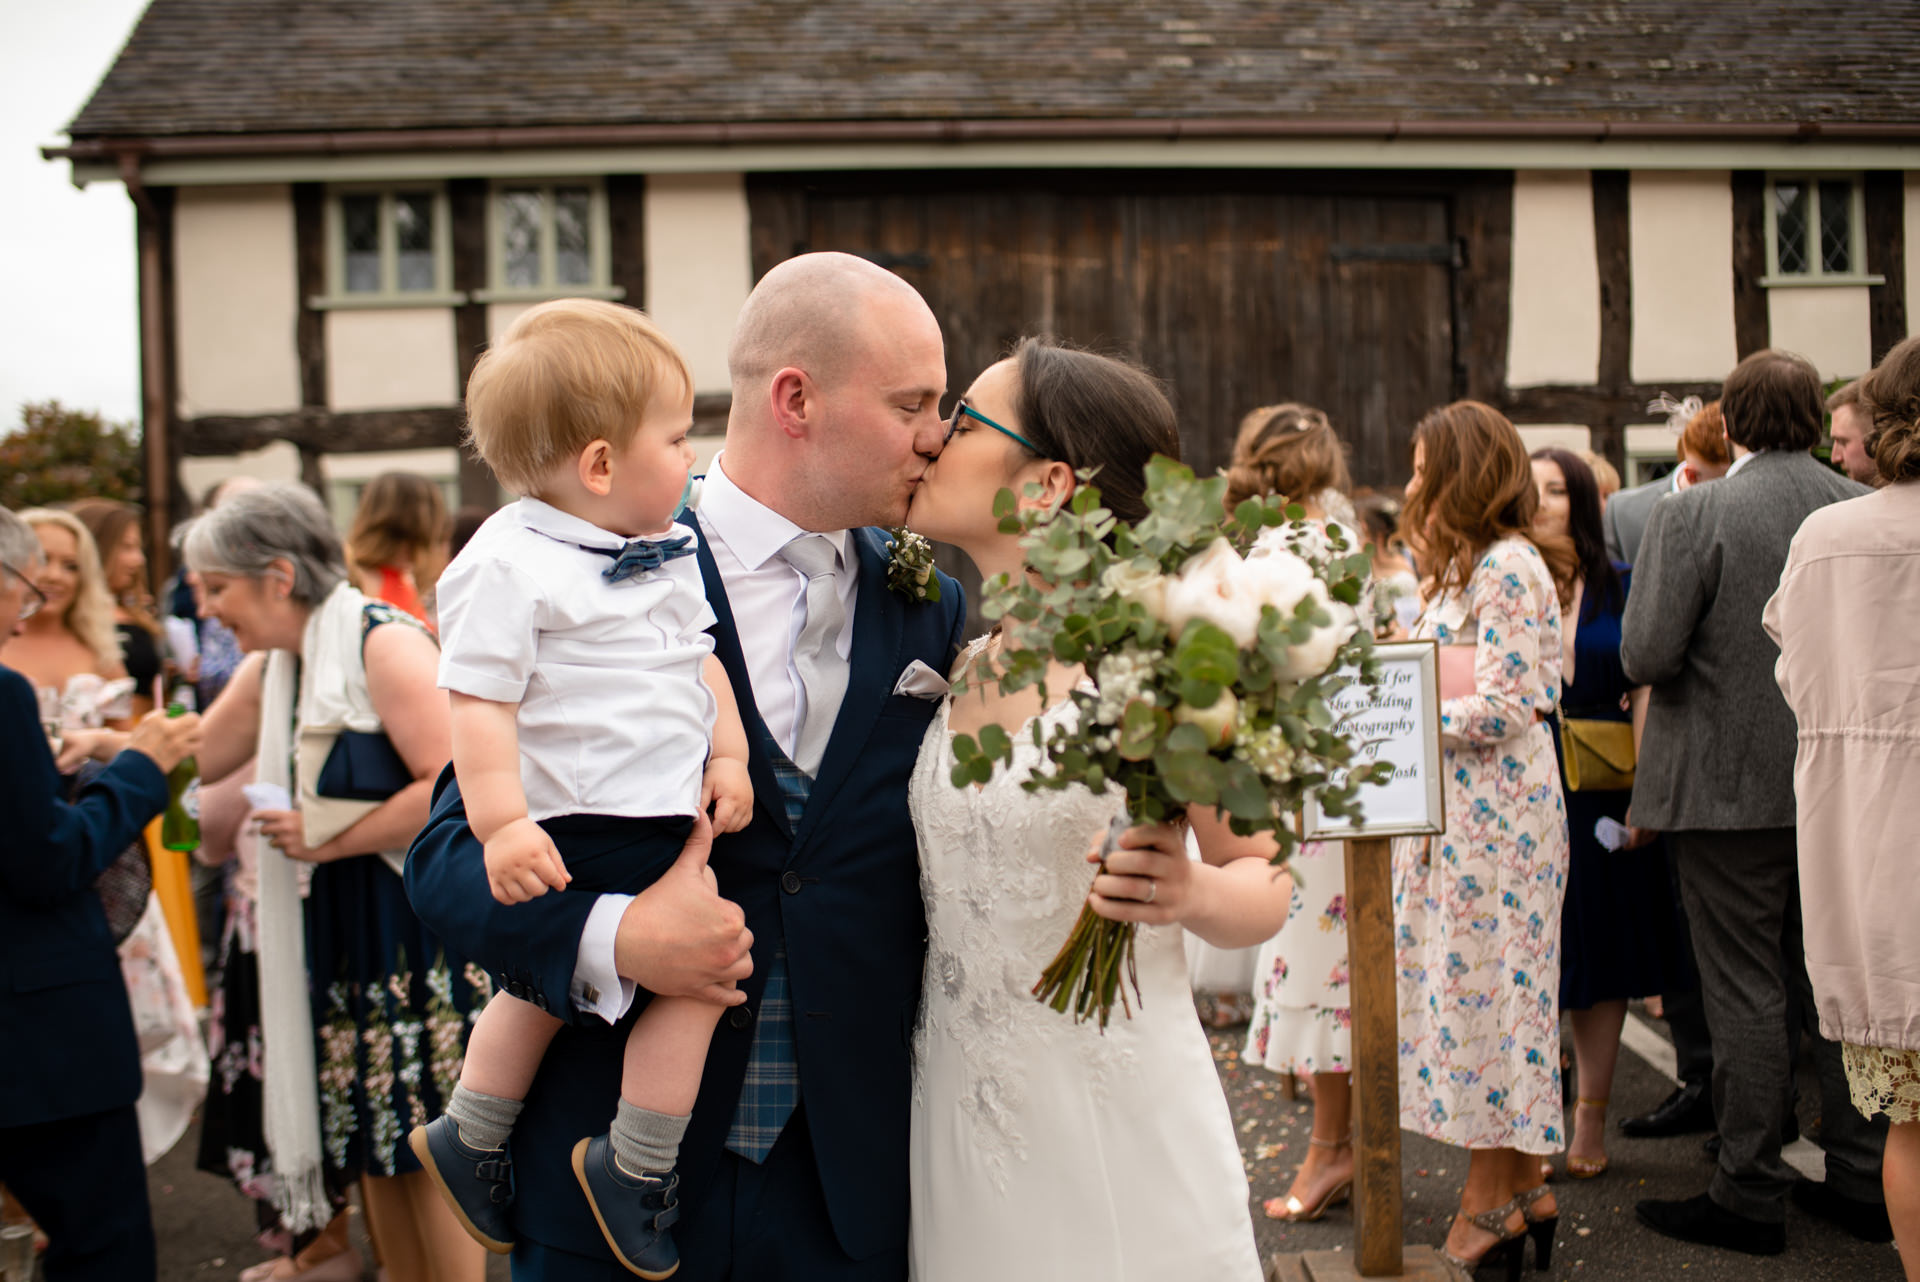 The Plough inn wedding photographer